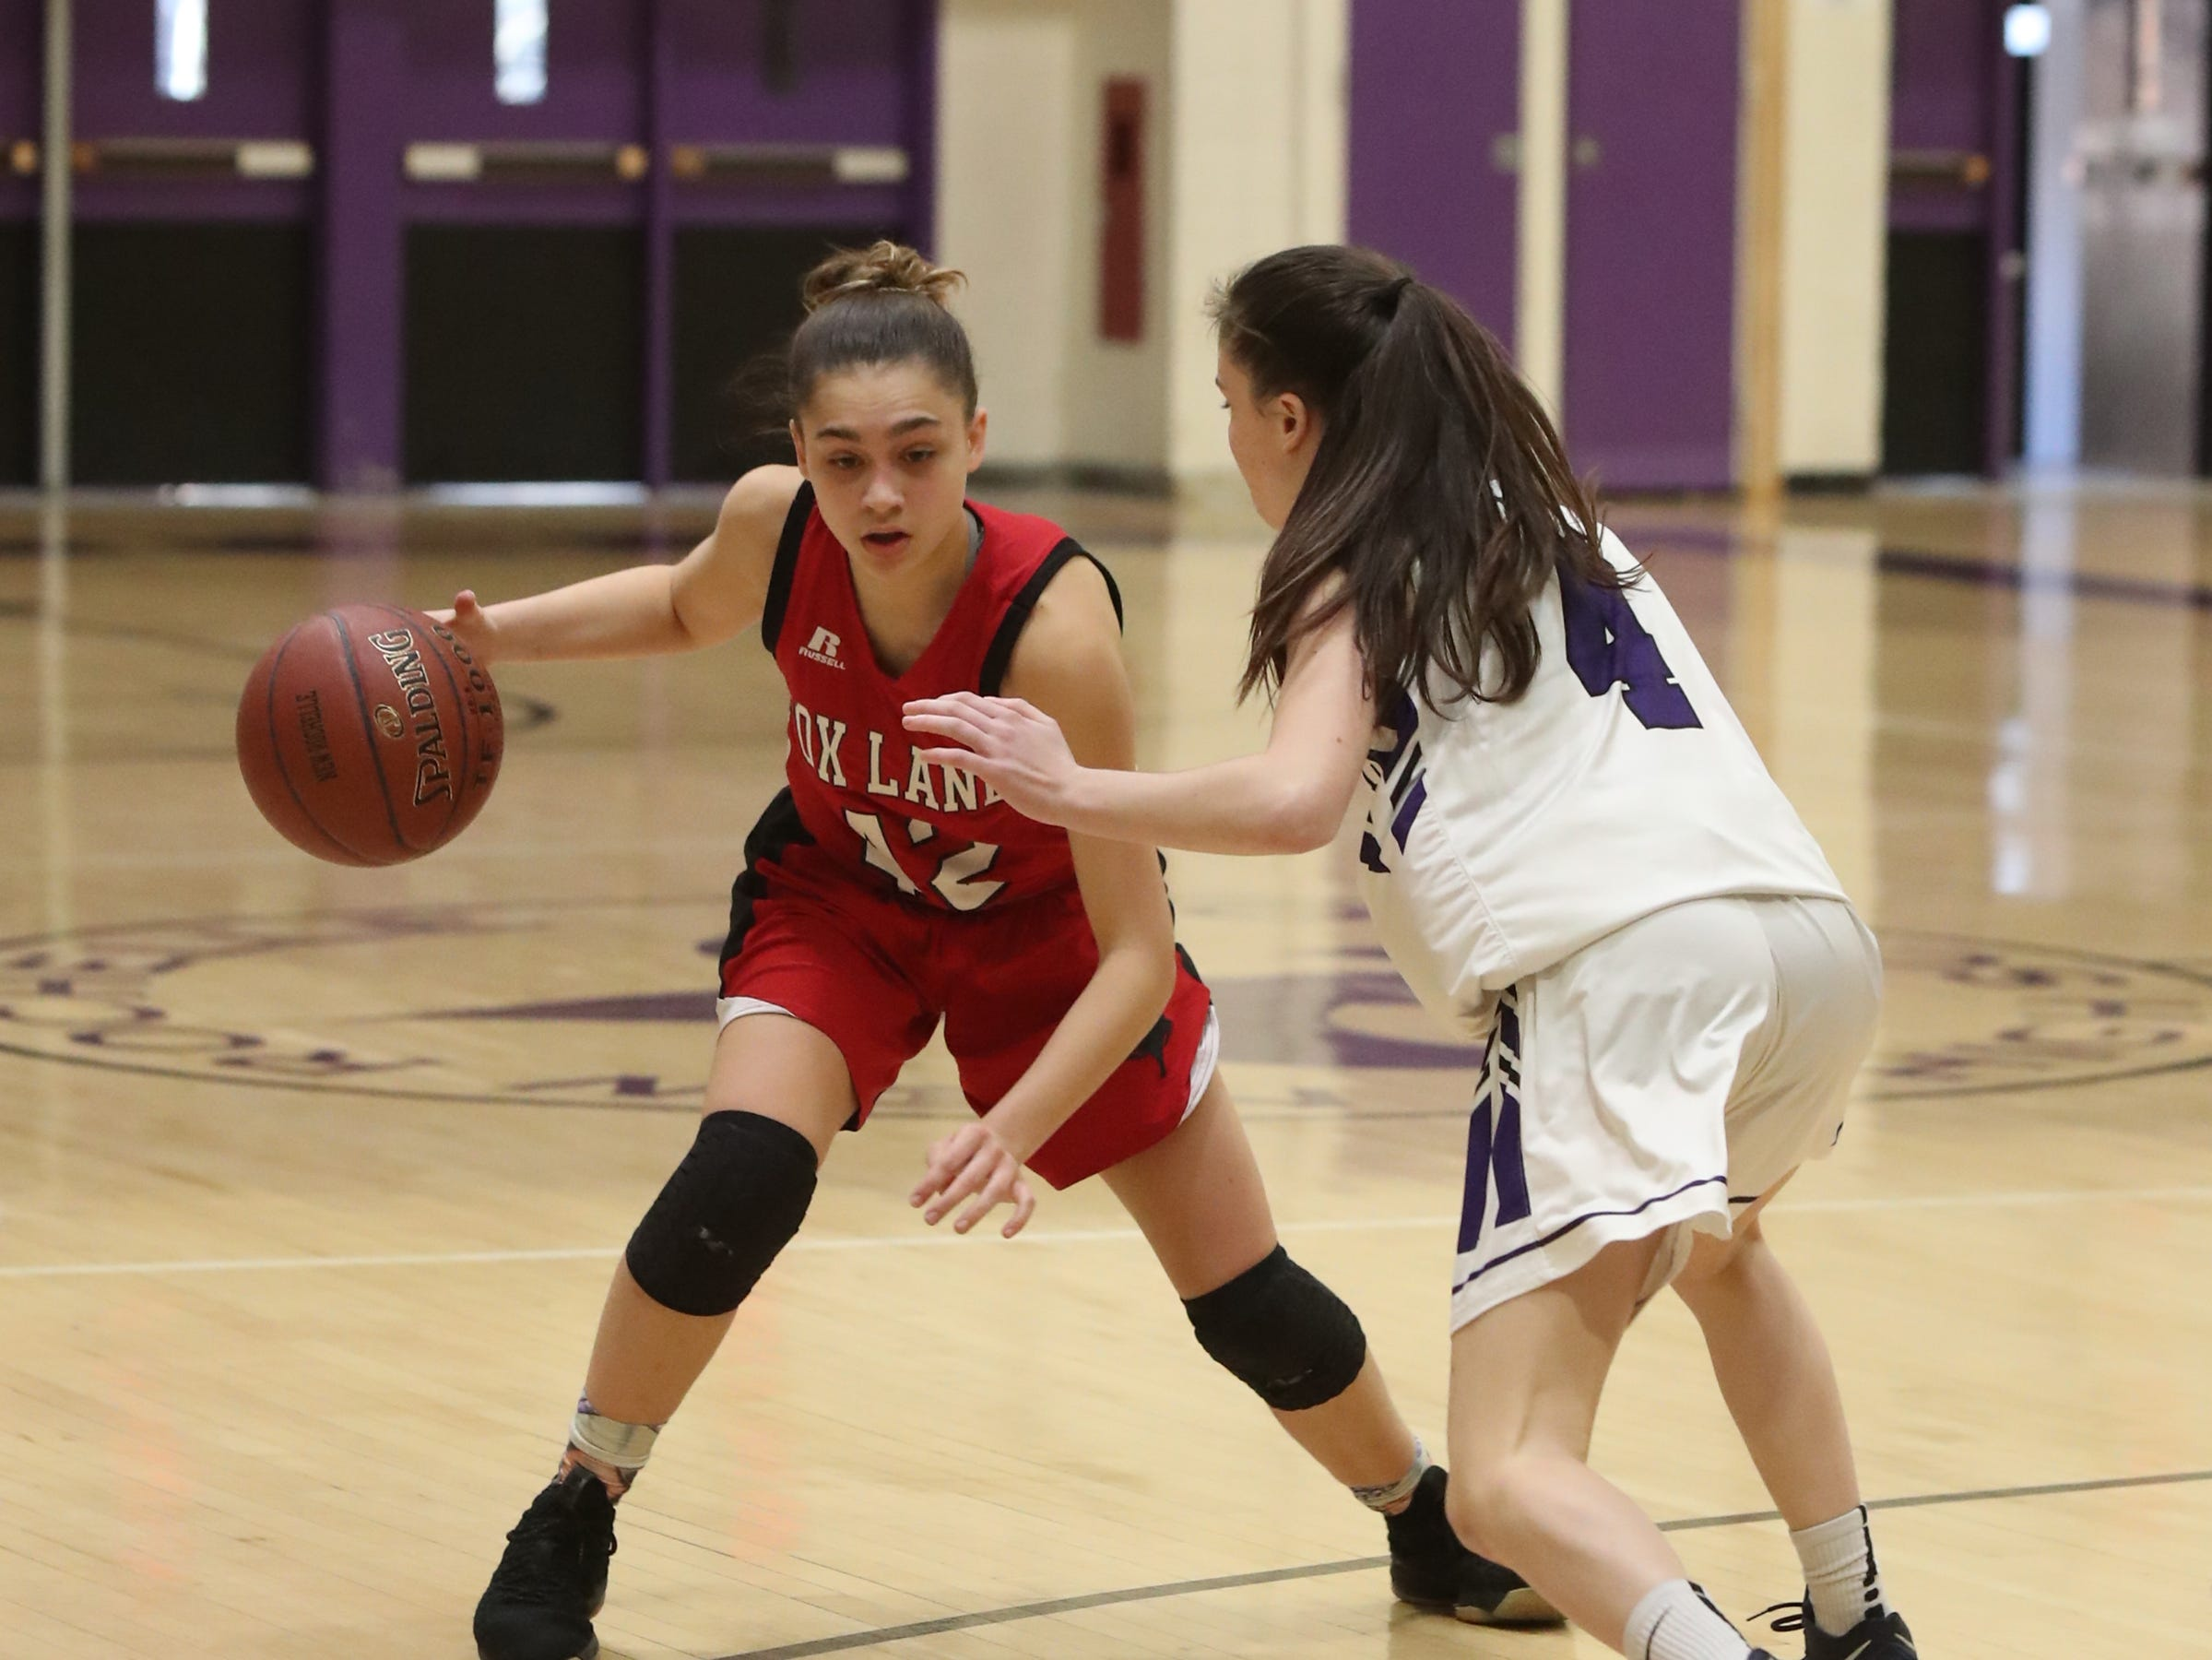 Fox Lane's Leah Figueroa (42) works the ball against New Rochelle's Nora Fitzgerald (4) in the class AA girls basketball outbracket game at New Rochelle High School in New Rochelle on Saturday, February 16, 2019.